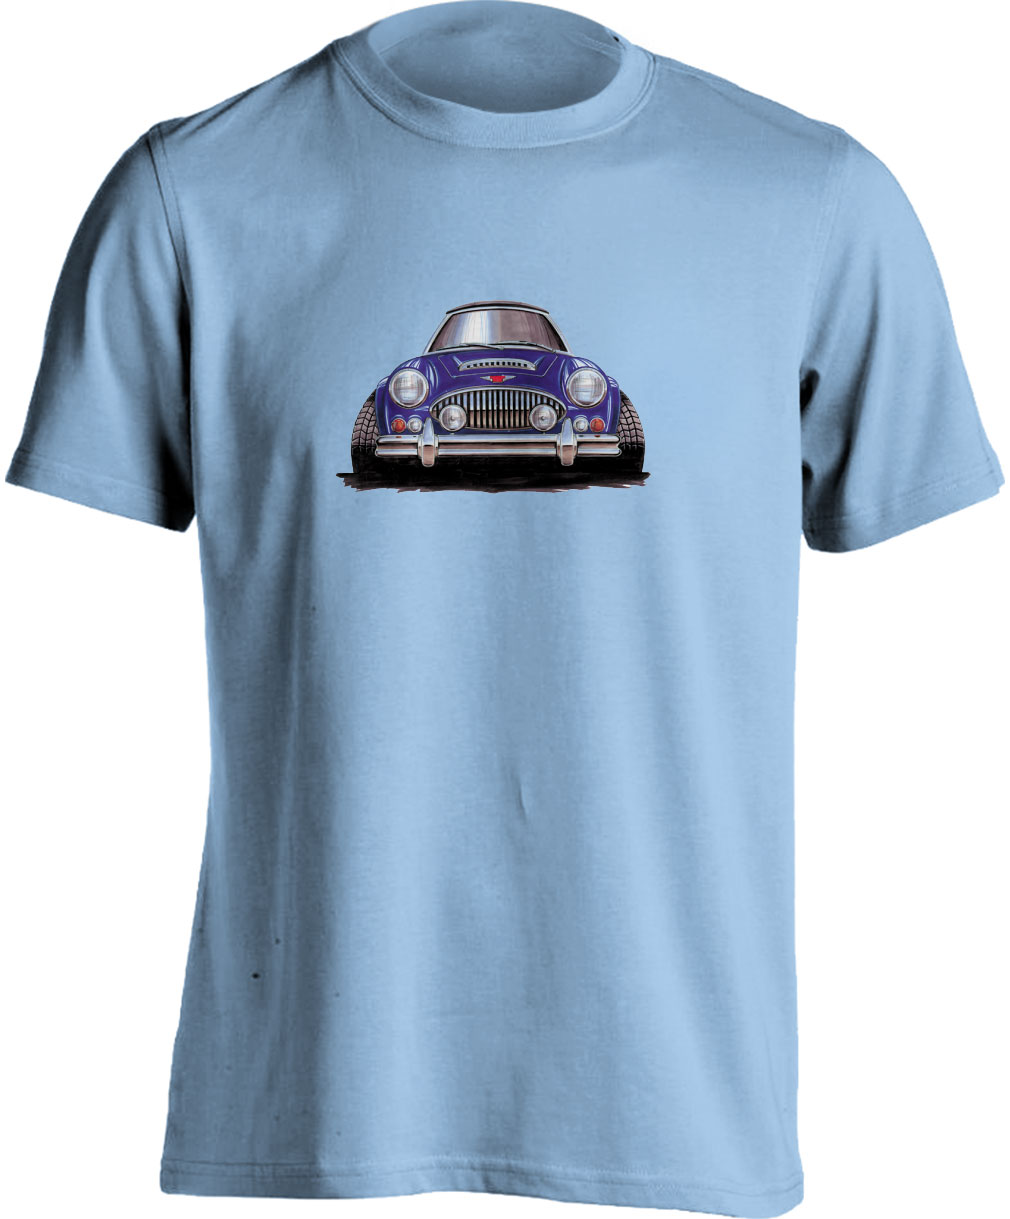 Adults Koolart Austin Healey 3000 - 0639Blue T Shirt